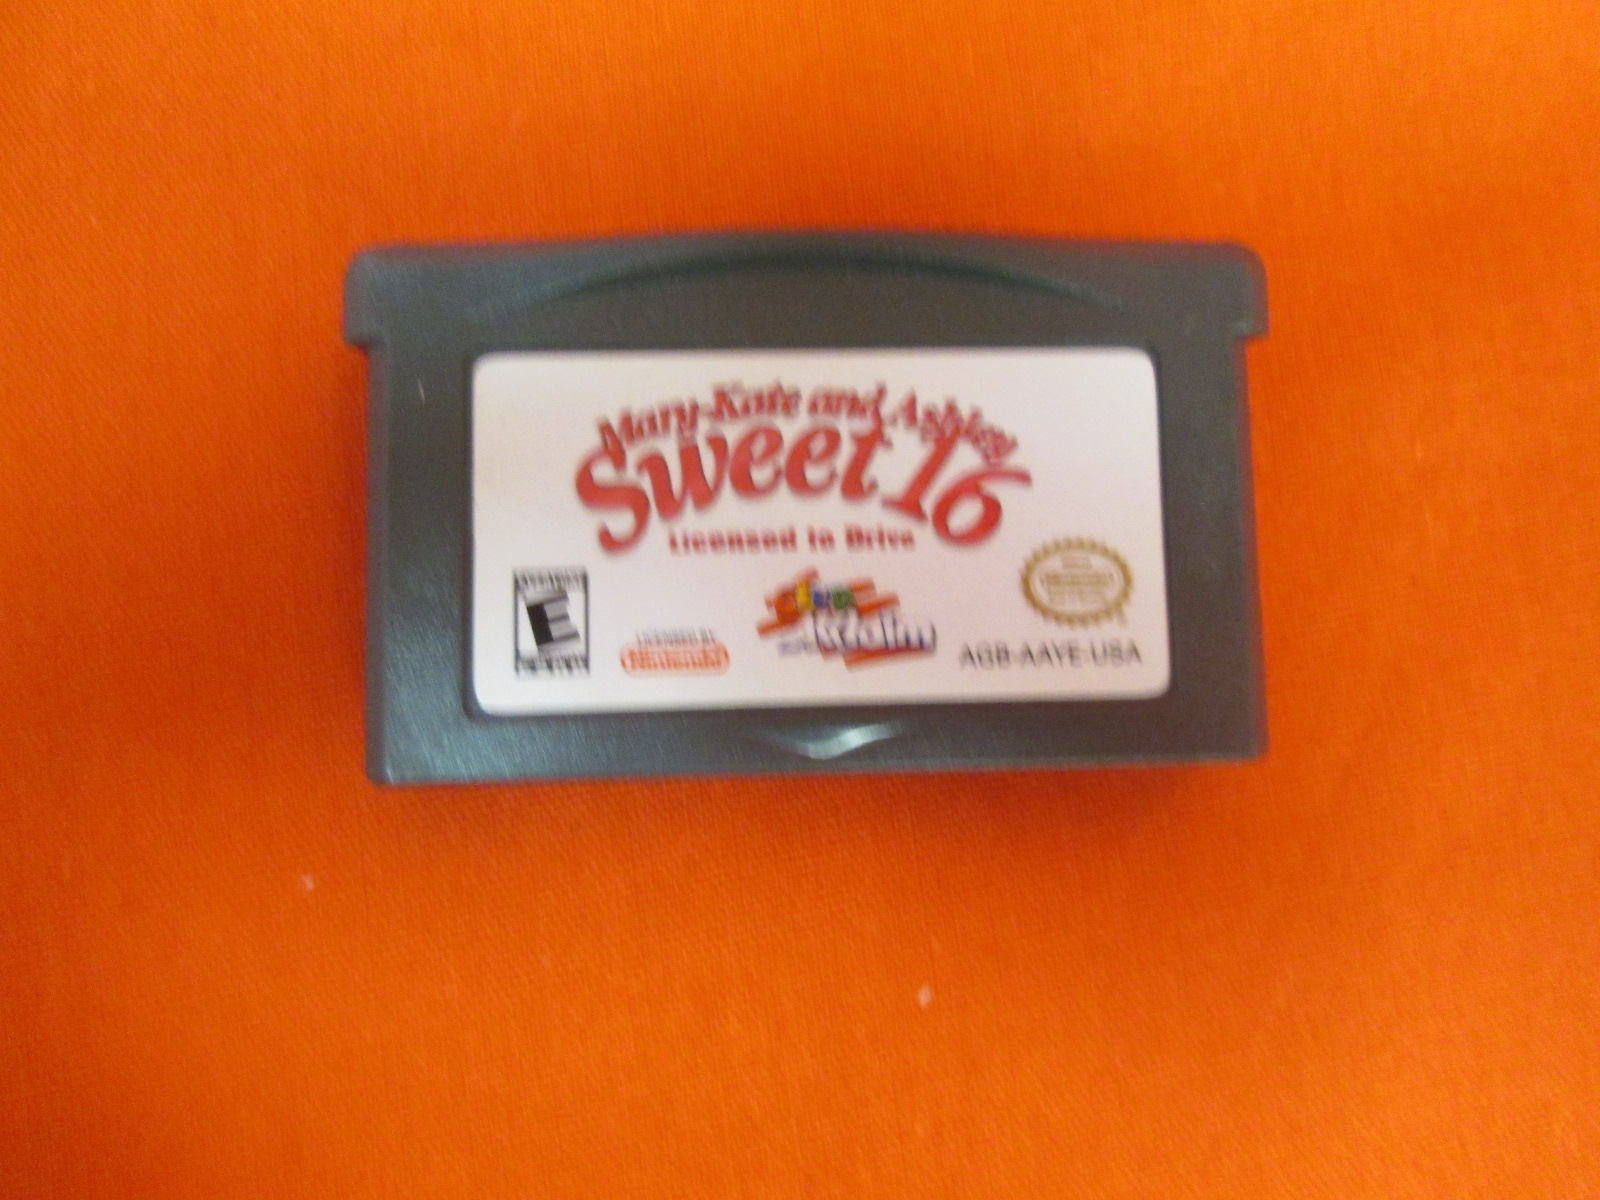 Mary-Kate & Ashley: Sweet 16 Licensed To Drive For GBA Gameboy Advance